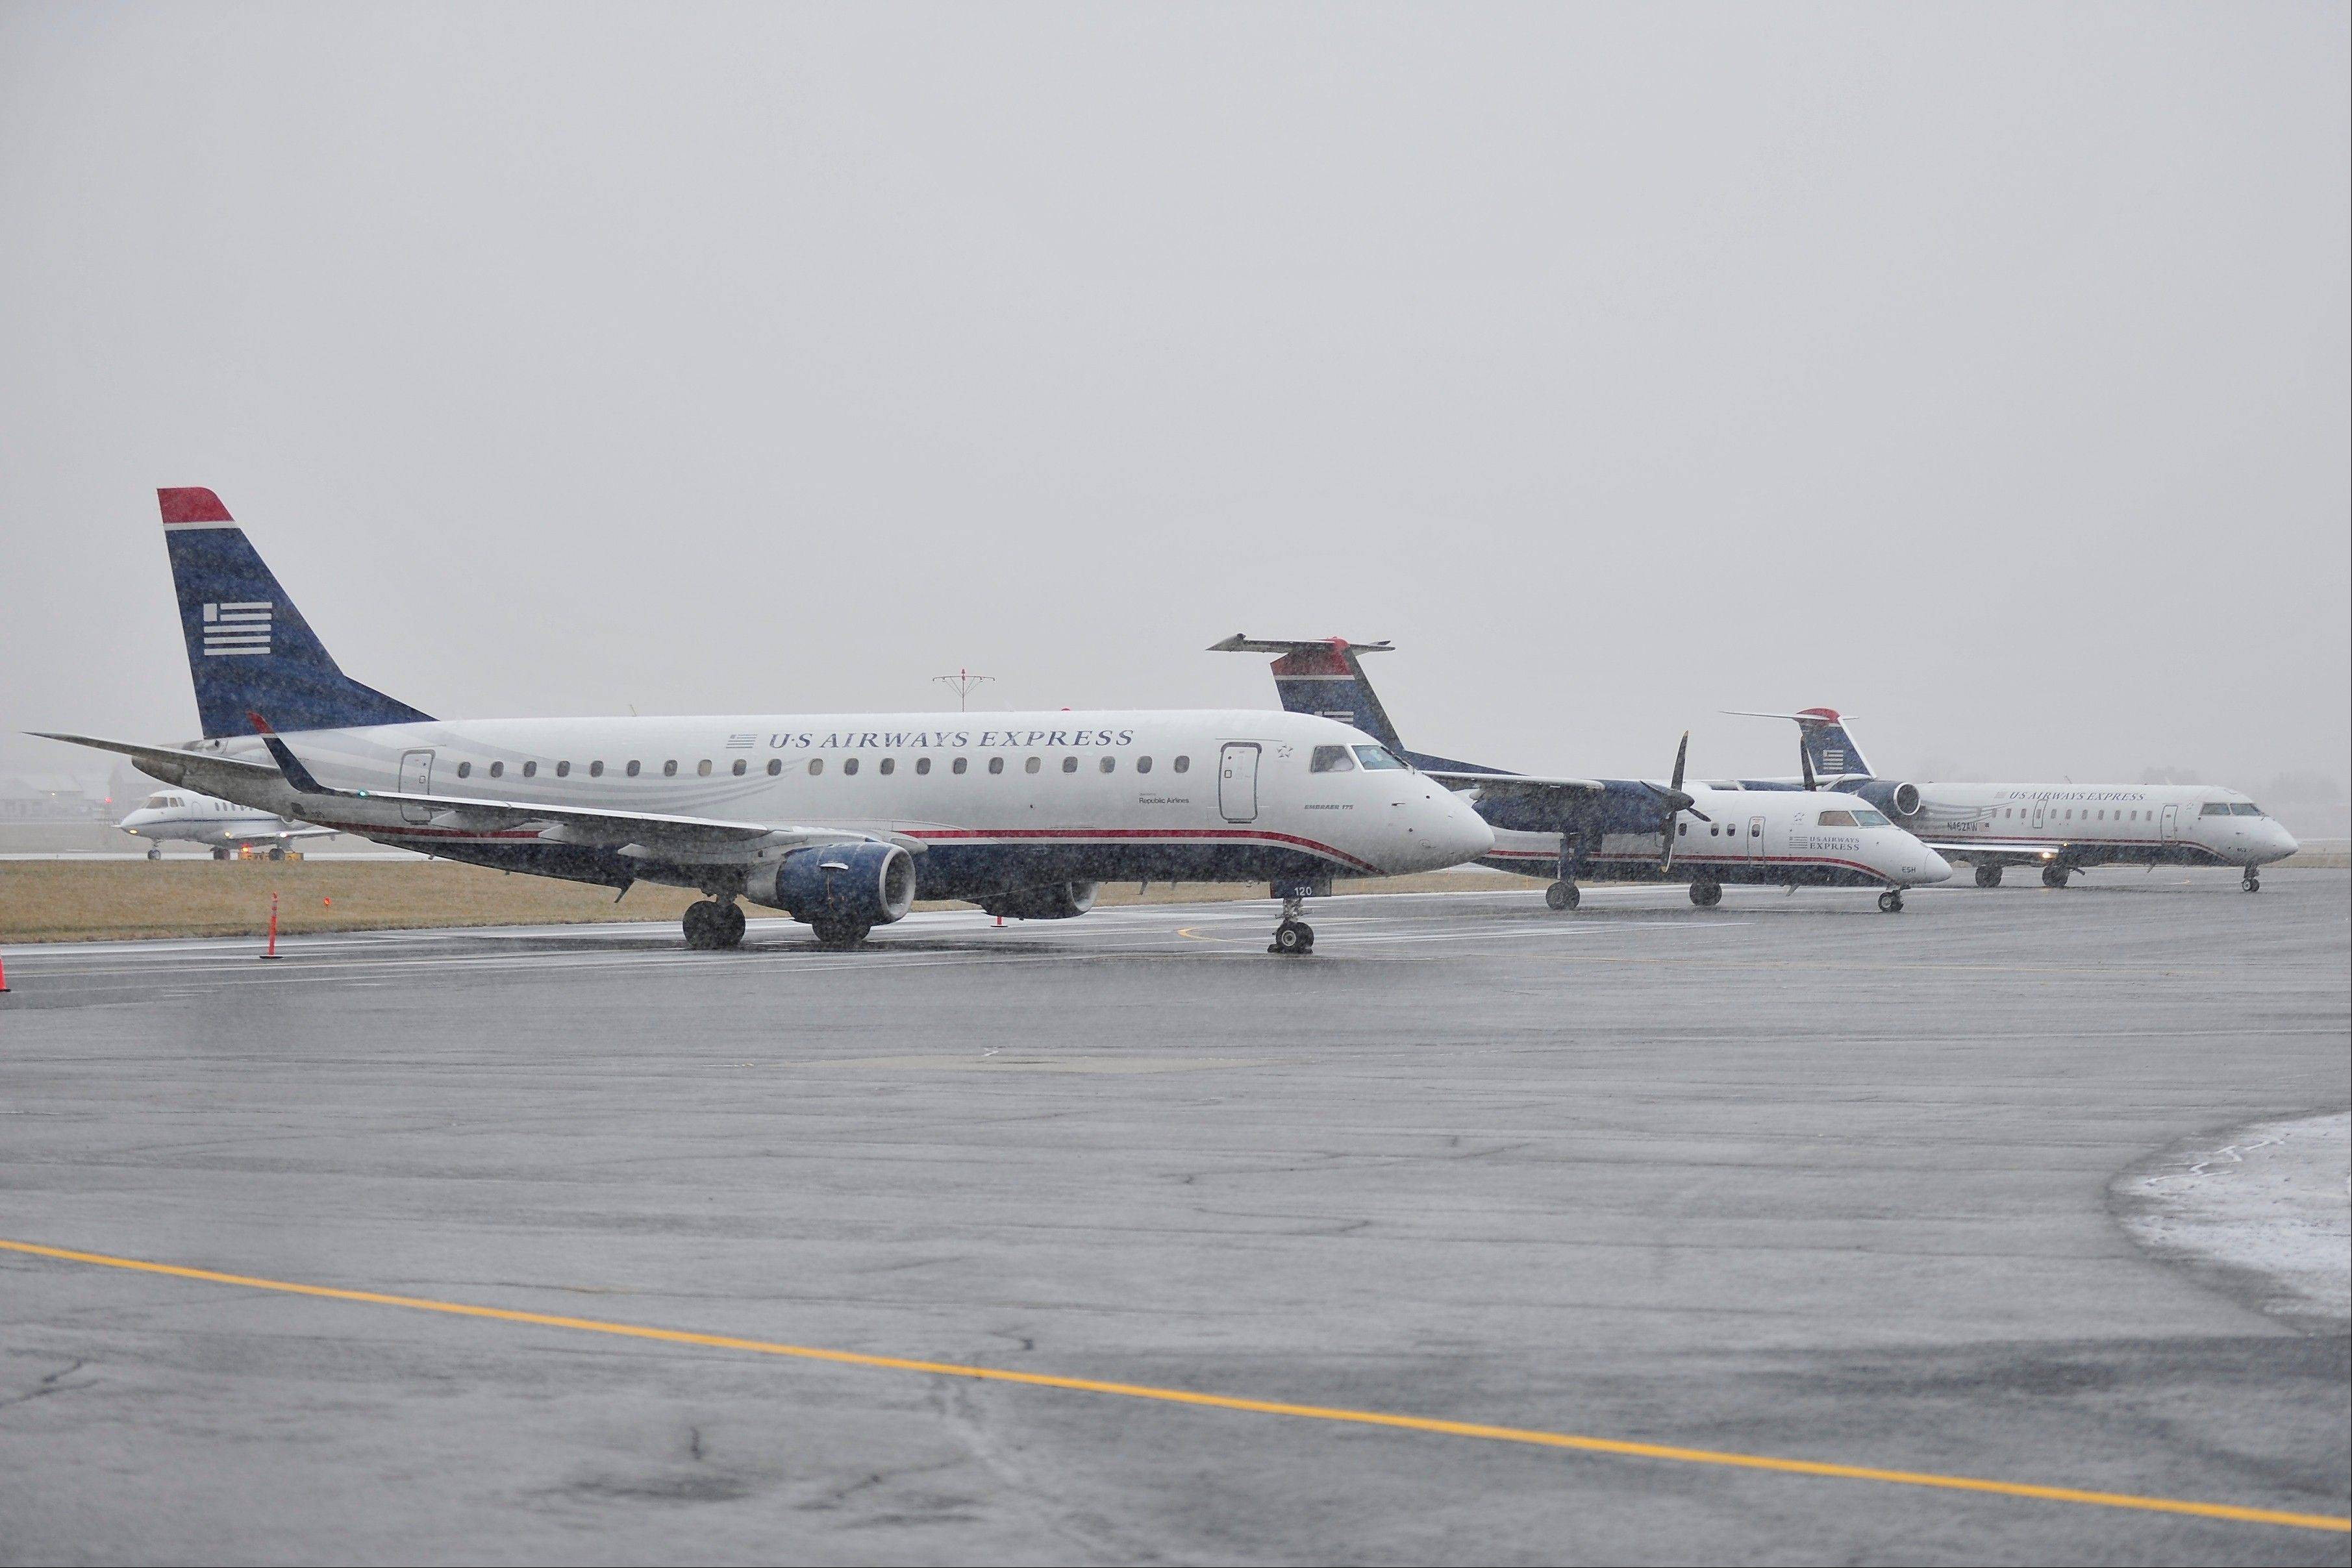 Aircraft diverted from the Philadelphia International Airport lineup on the ramp at Lehigh Valley International Airport Sunday in Allentown, Pa. Heavy snow and icing conditions forced the aircraft to divert from landing at Philadelphia.